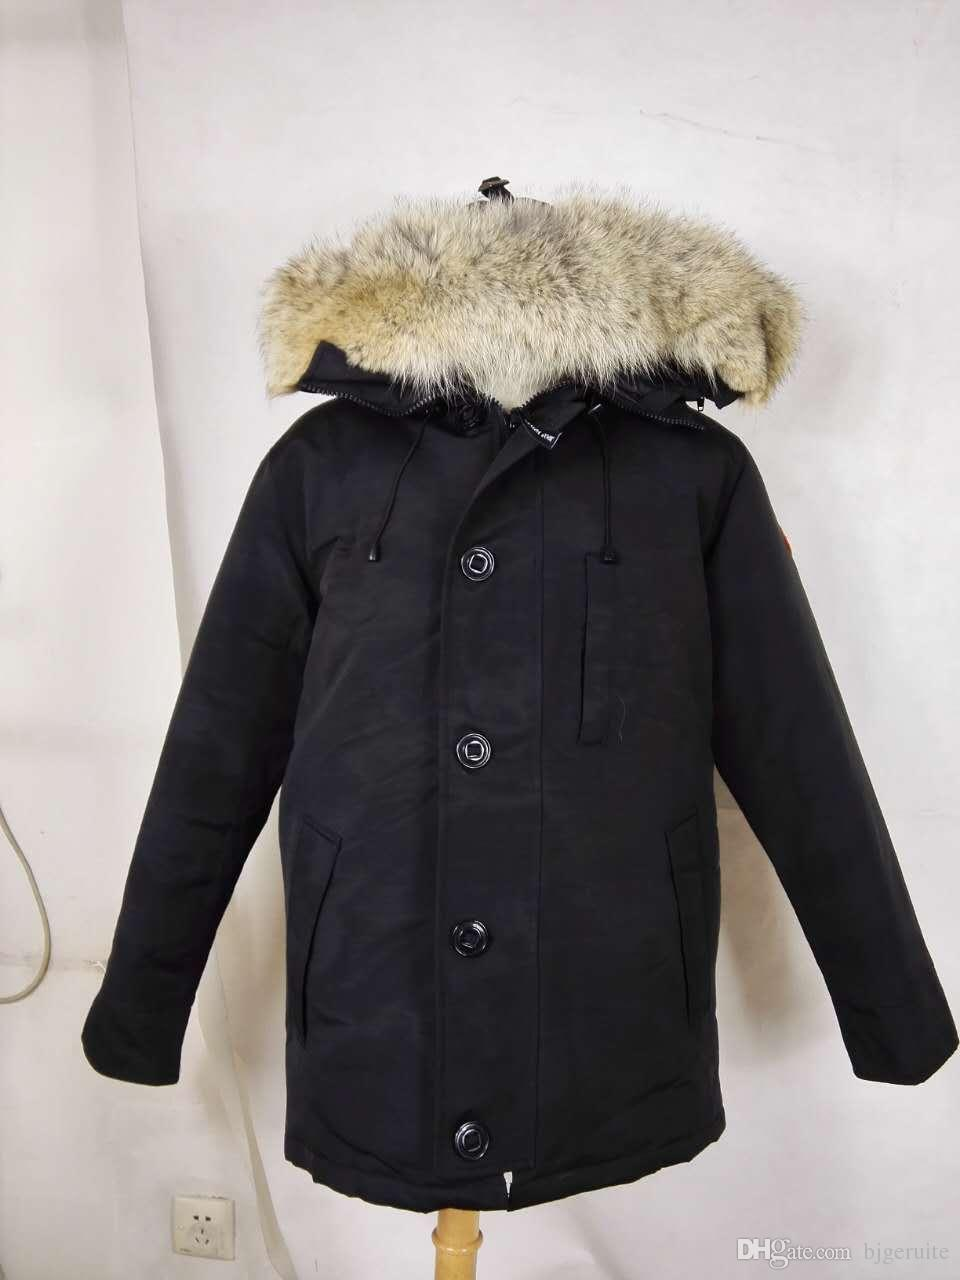 b4ab5afe460 2019 2018 Brand New Big Coyote Fur New Mens Thick Down Canada Style CHATEAU  Parka Coat Winter Warm Jacket 30 Degree From Bjgeruite, $159.4   ...